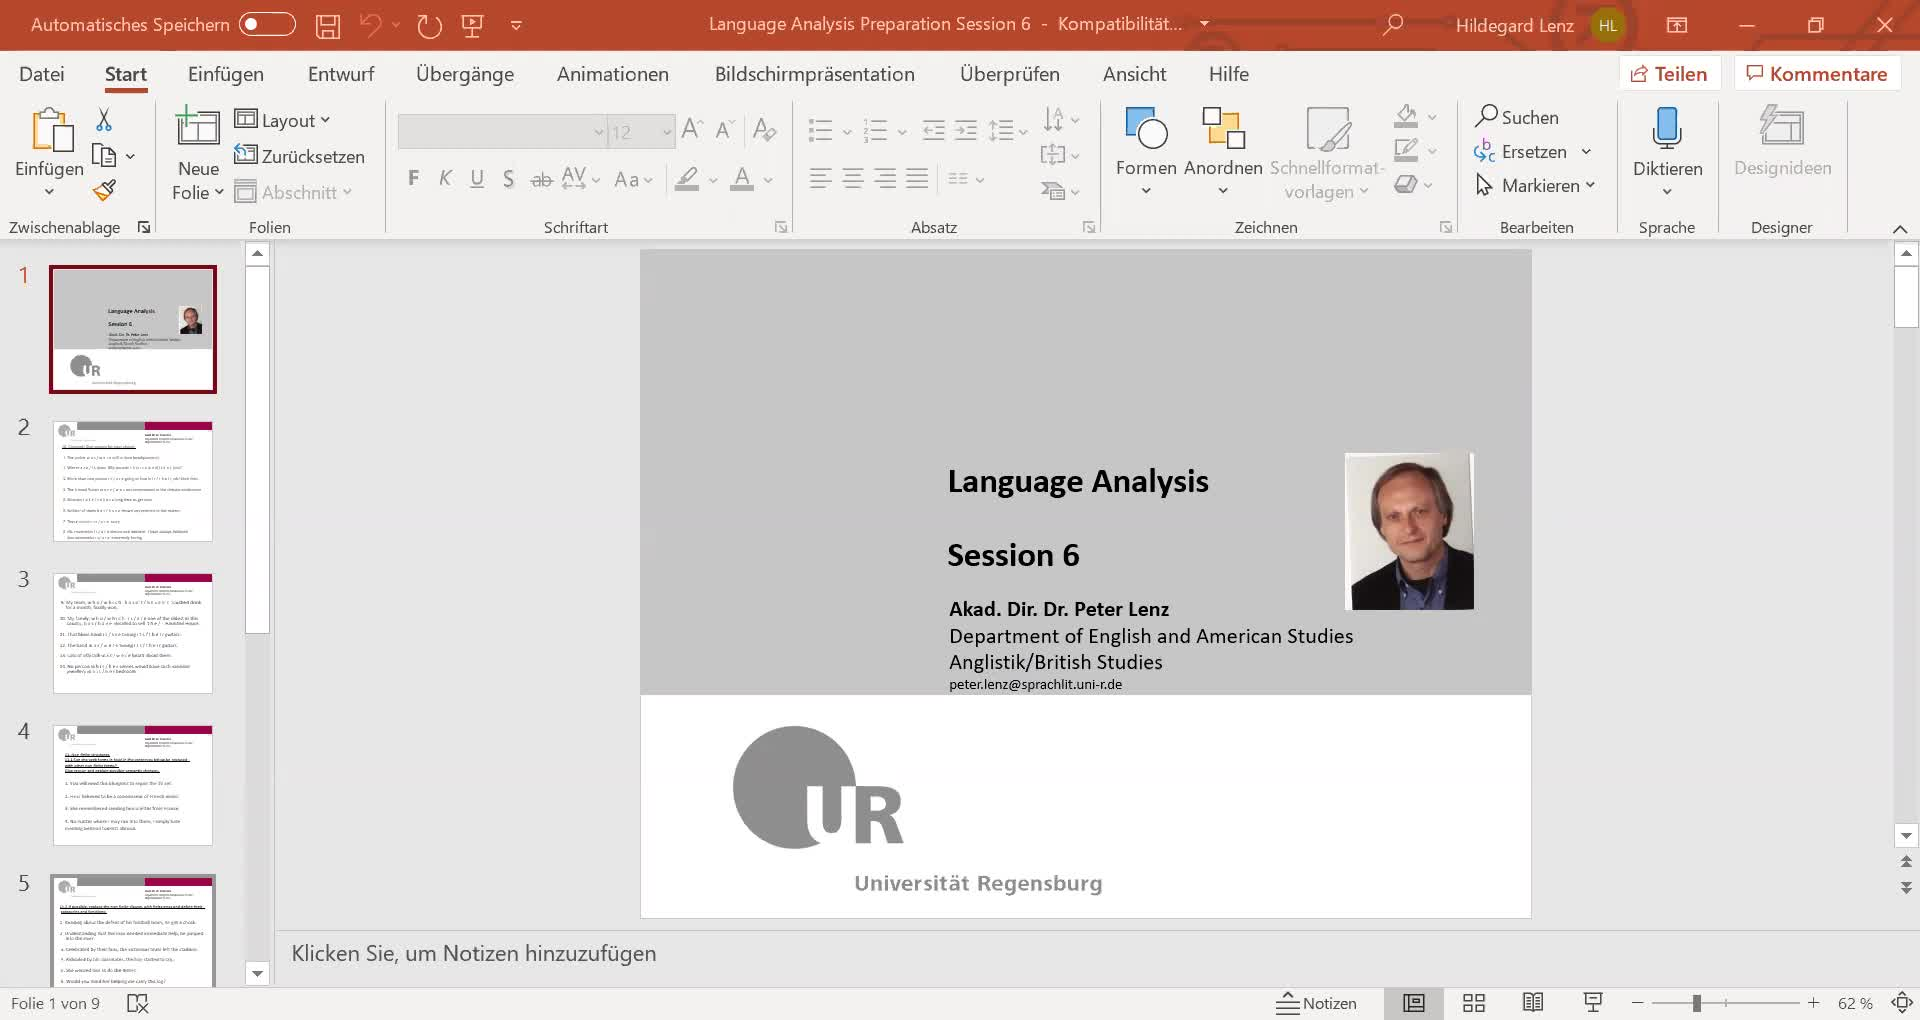 Language Analysis Session 6 Video